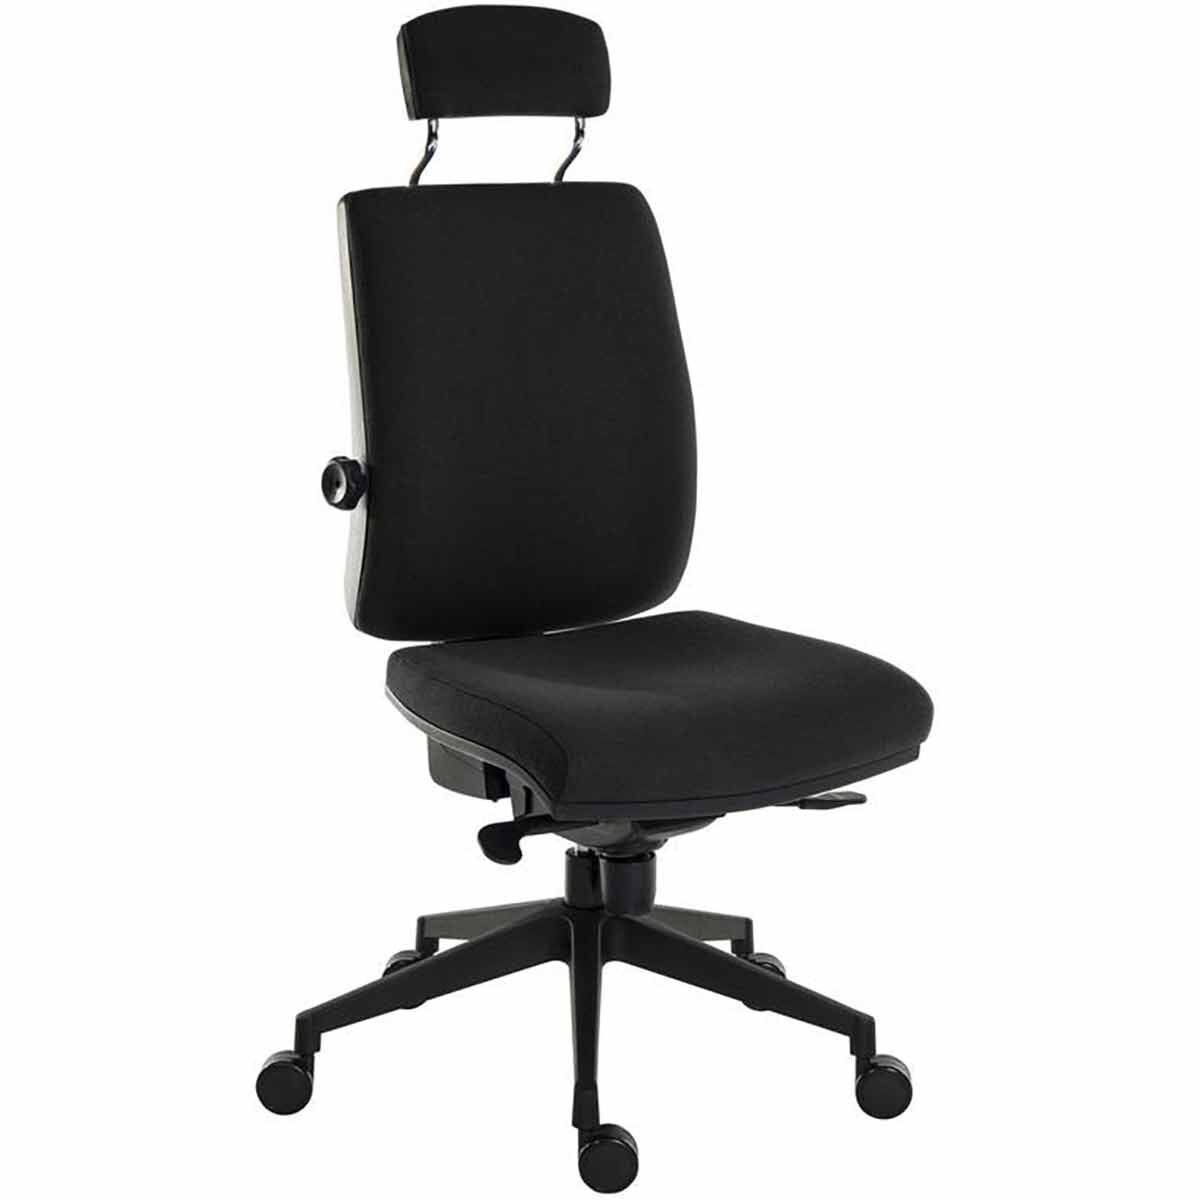 Teknik Office Ergo Plus Ultra Fabric Chair with Headrest